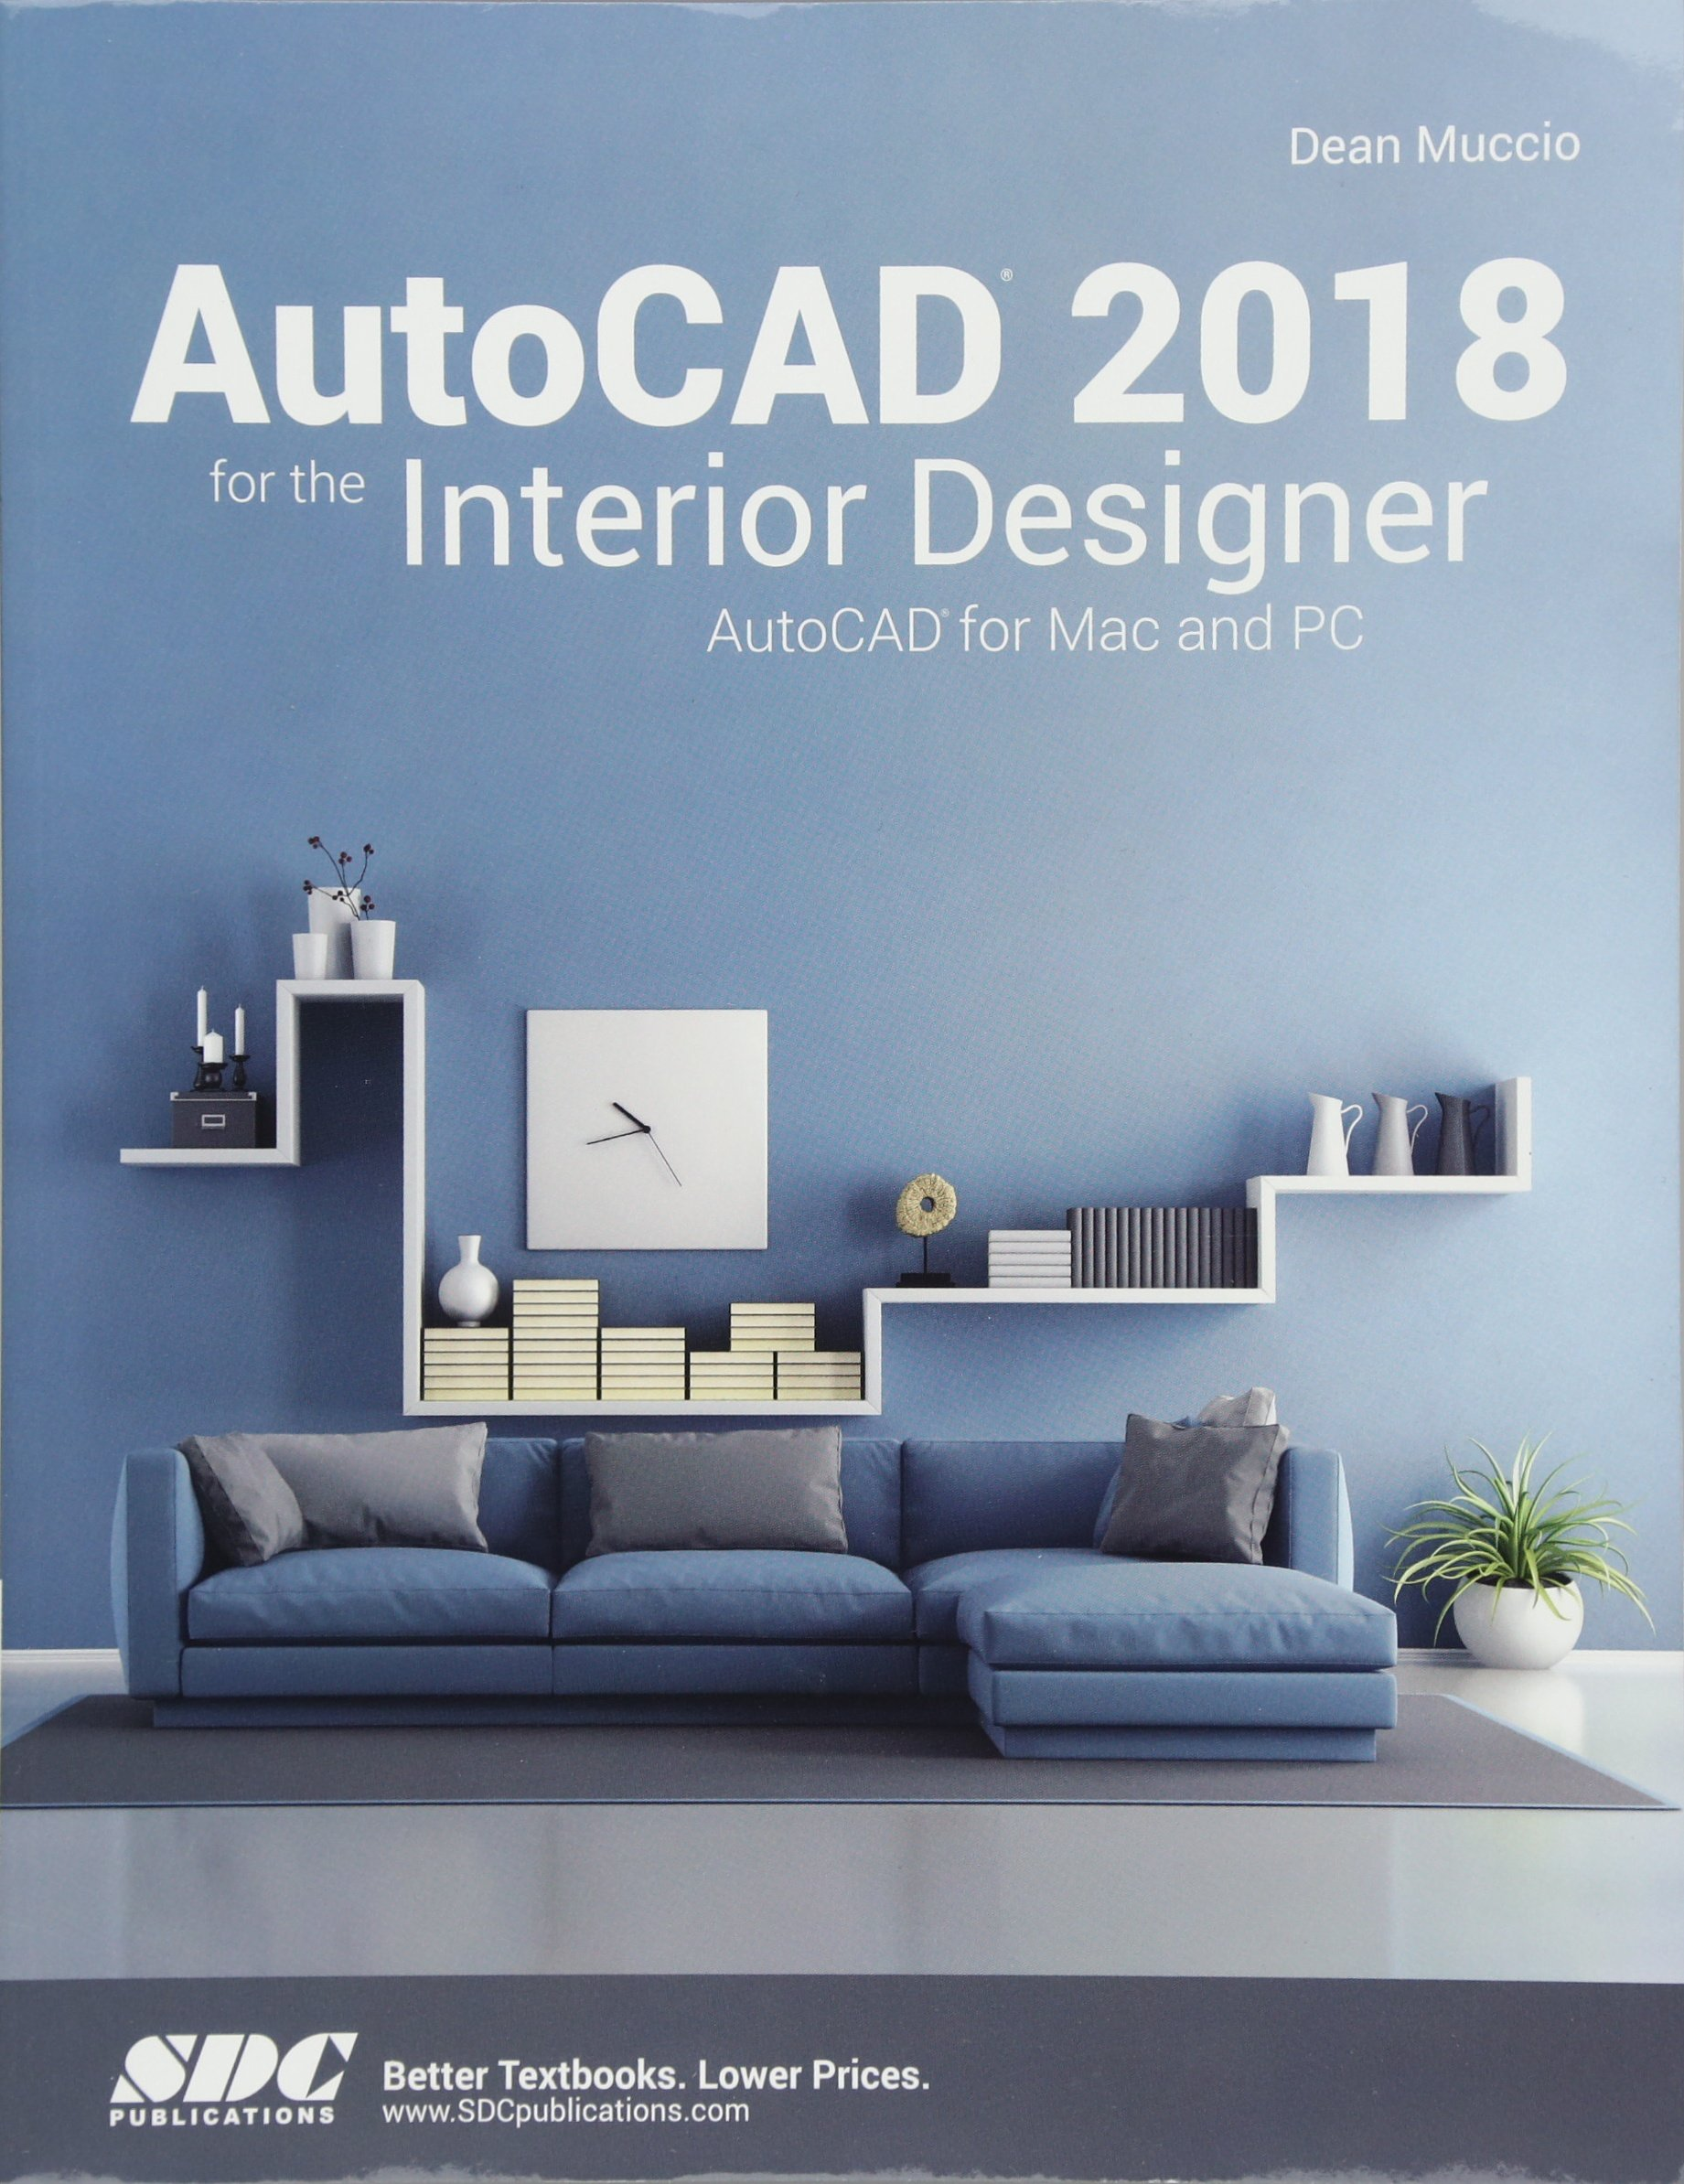 Amazon com autocad 2018 for the interior designer autocad for mac and pc 9781630571191 dean muccio books